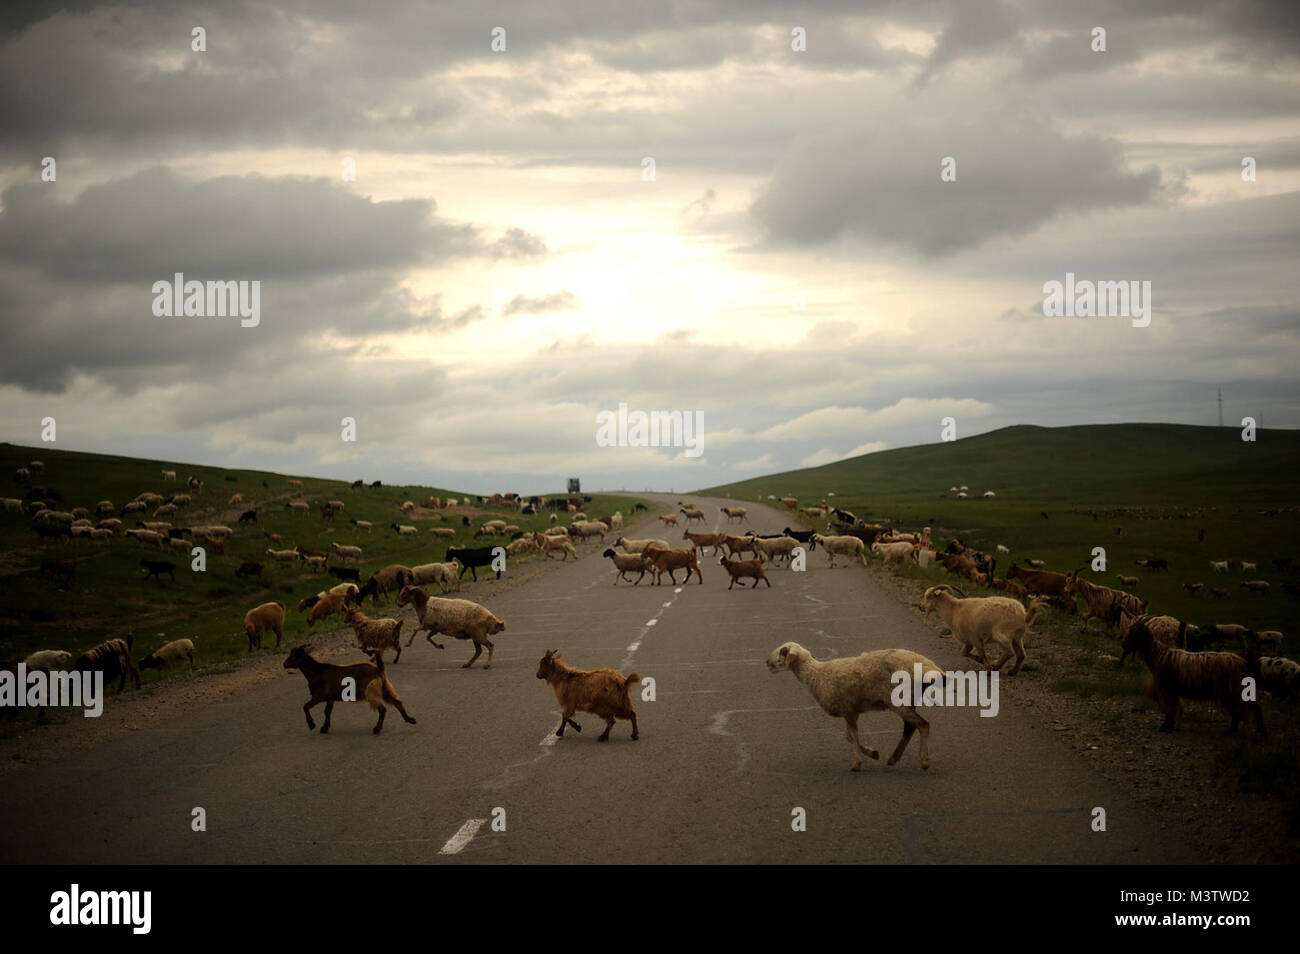 A flock of sheep cross a road in northeastern Mongolia. Mongolia is the land of livestock with more than 30 million - Stock Image